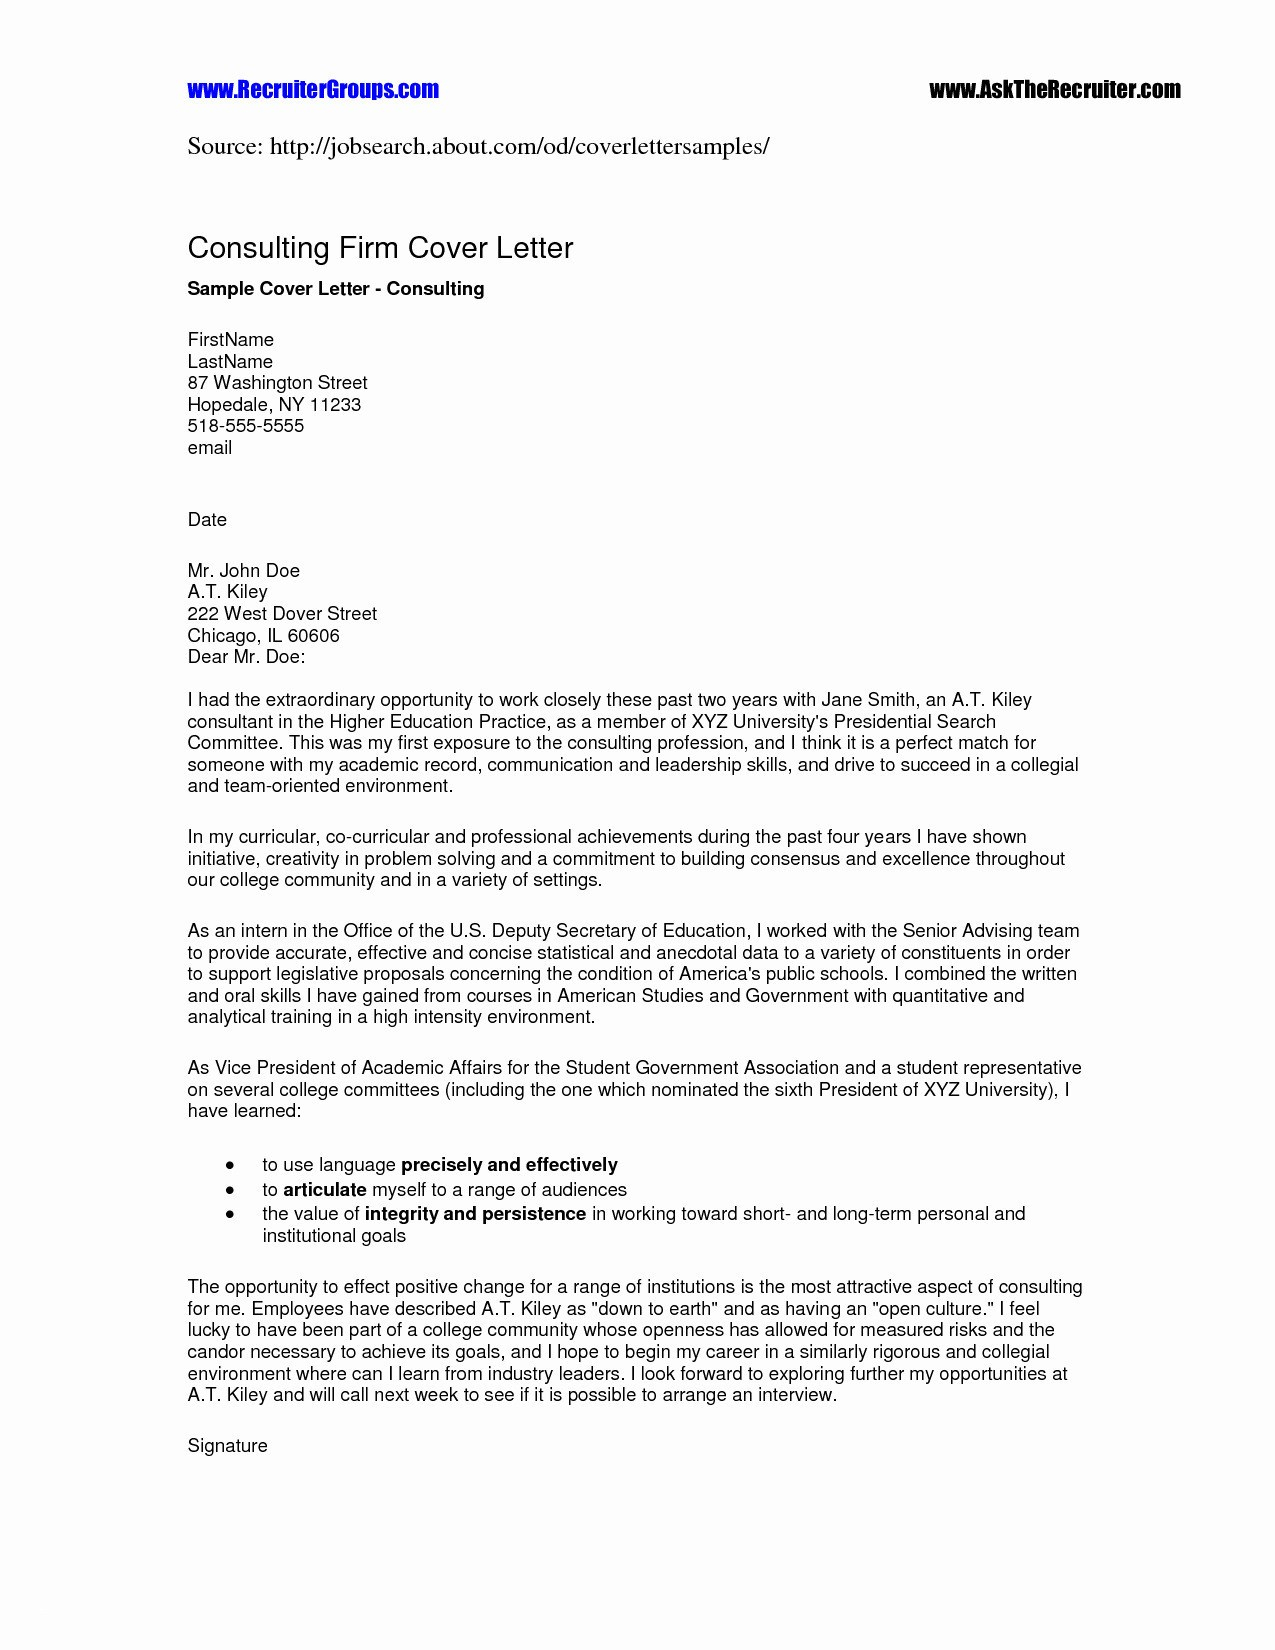 Letter to Creditors Template - Template Letters to Creditors